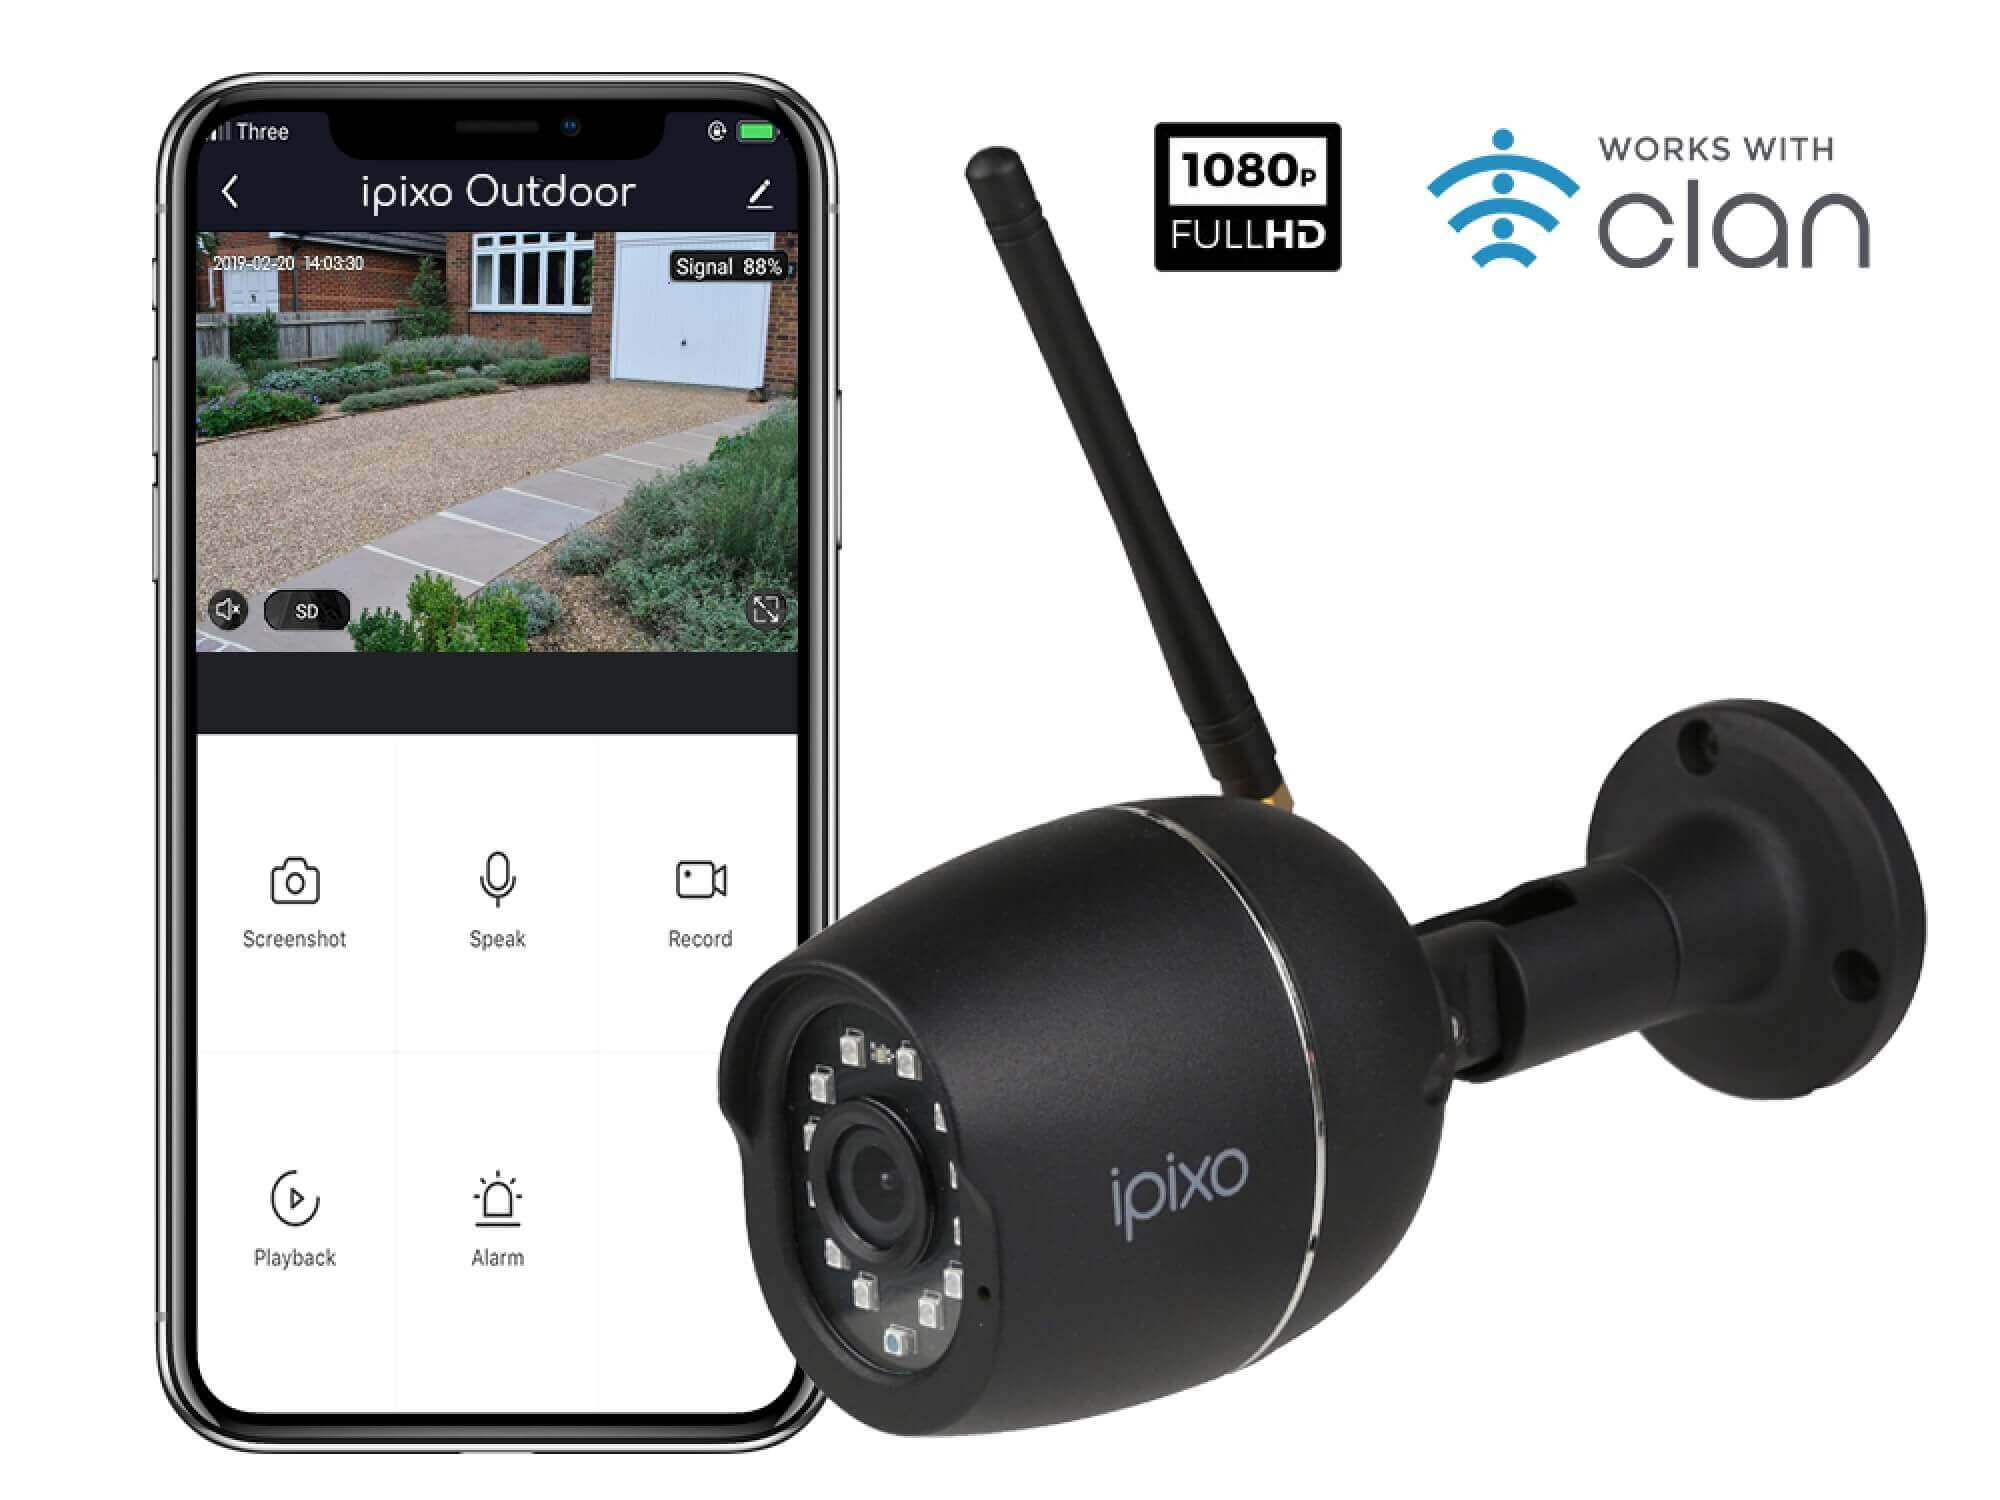 New ipixo Outdoor WiFi 1080p Security Camera -  Fixed - Outdoor - Weatherproof - Motion Alerts - No monthly charges